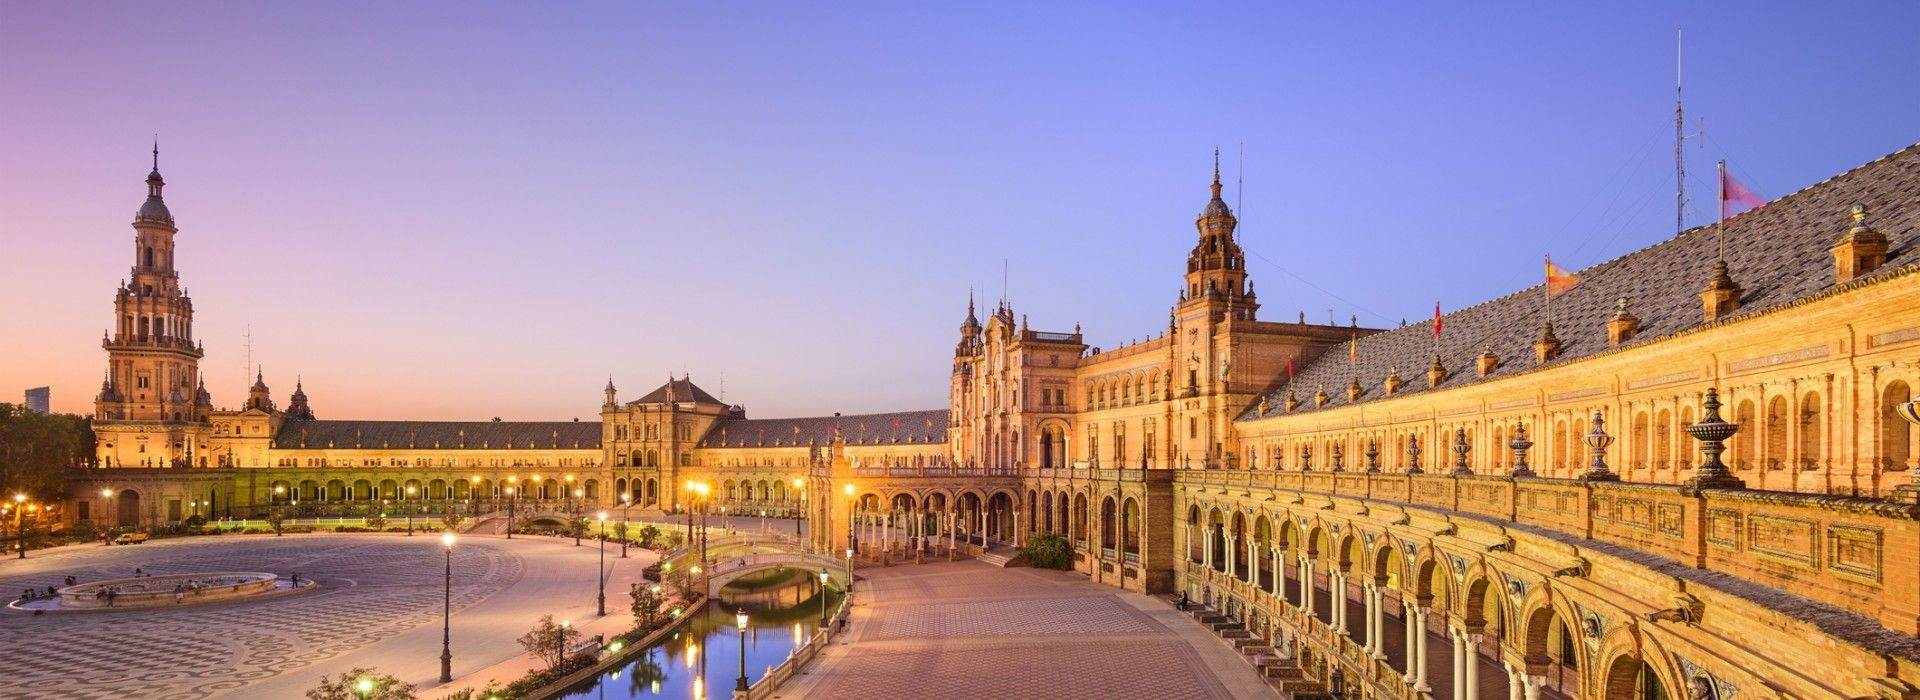 Beach, romance, getaways and relaxation Tours in Spain